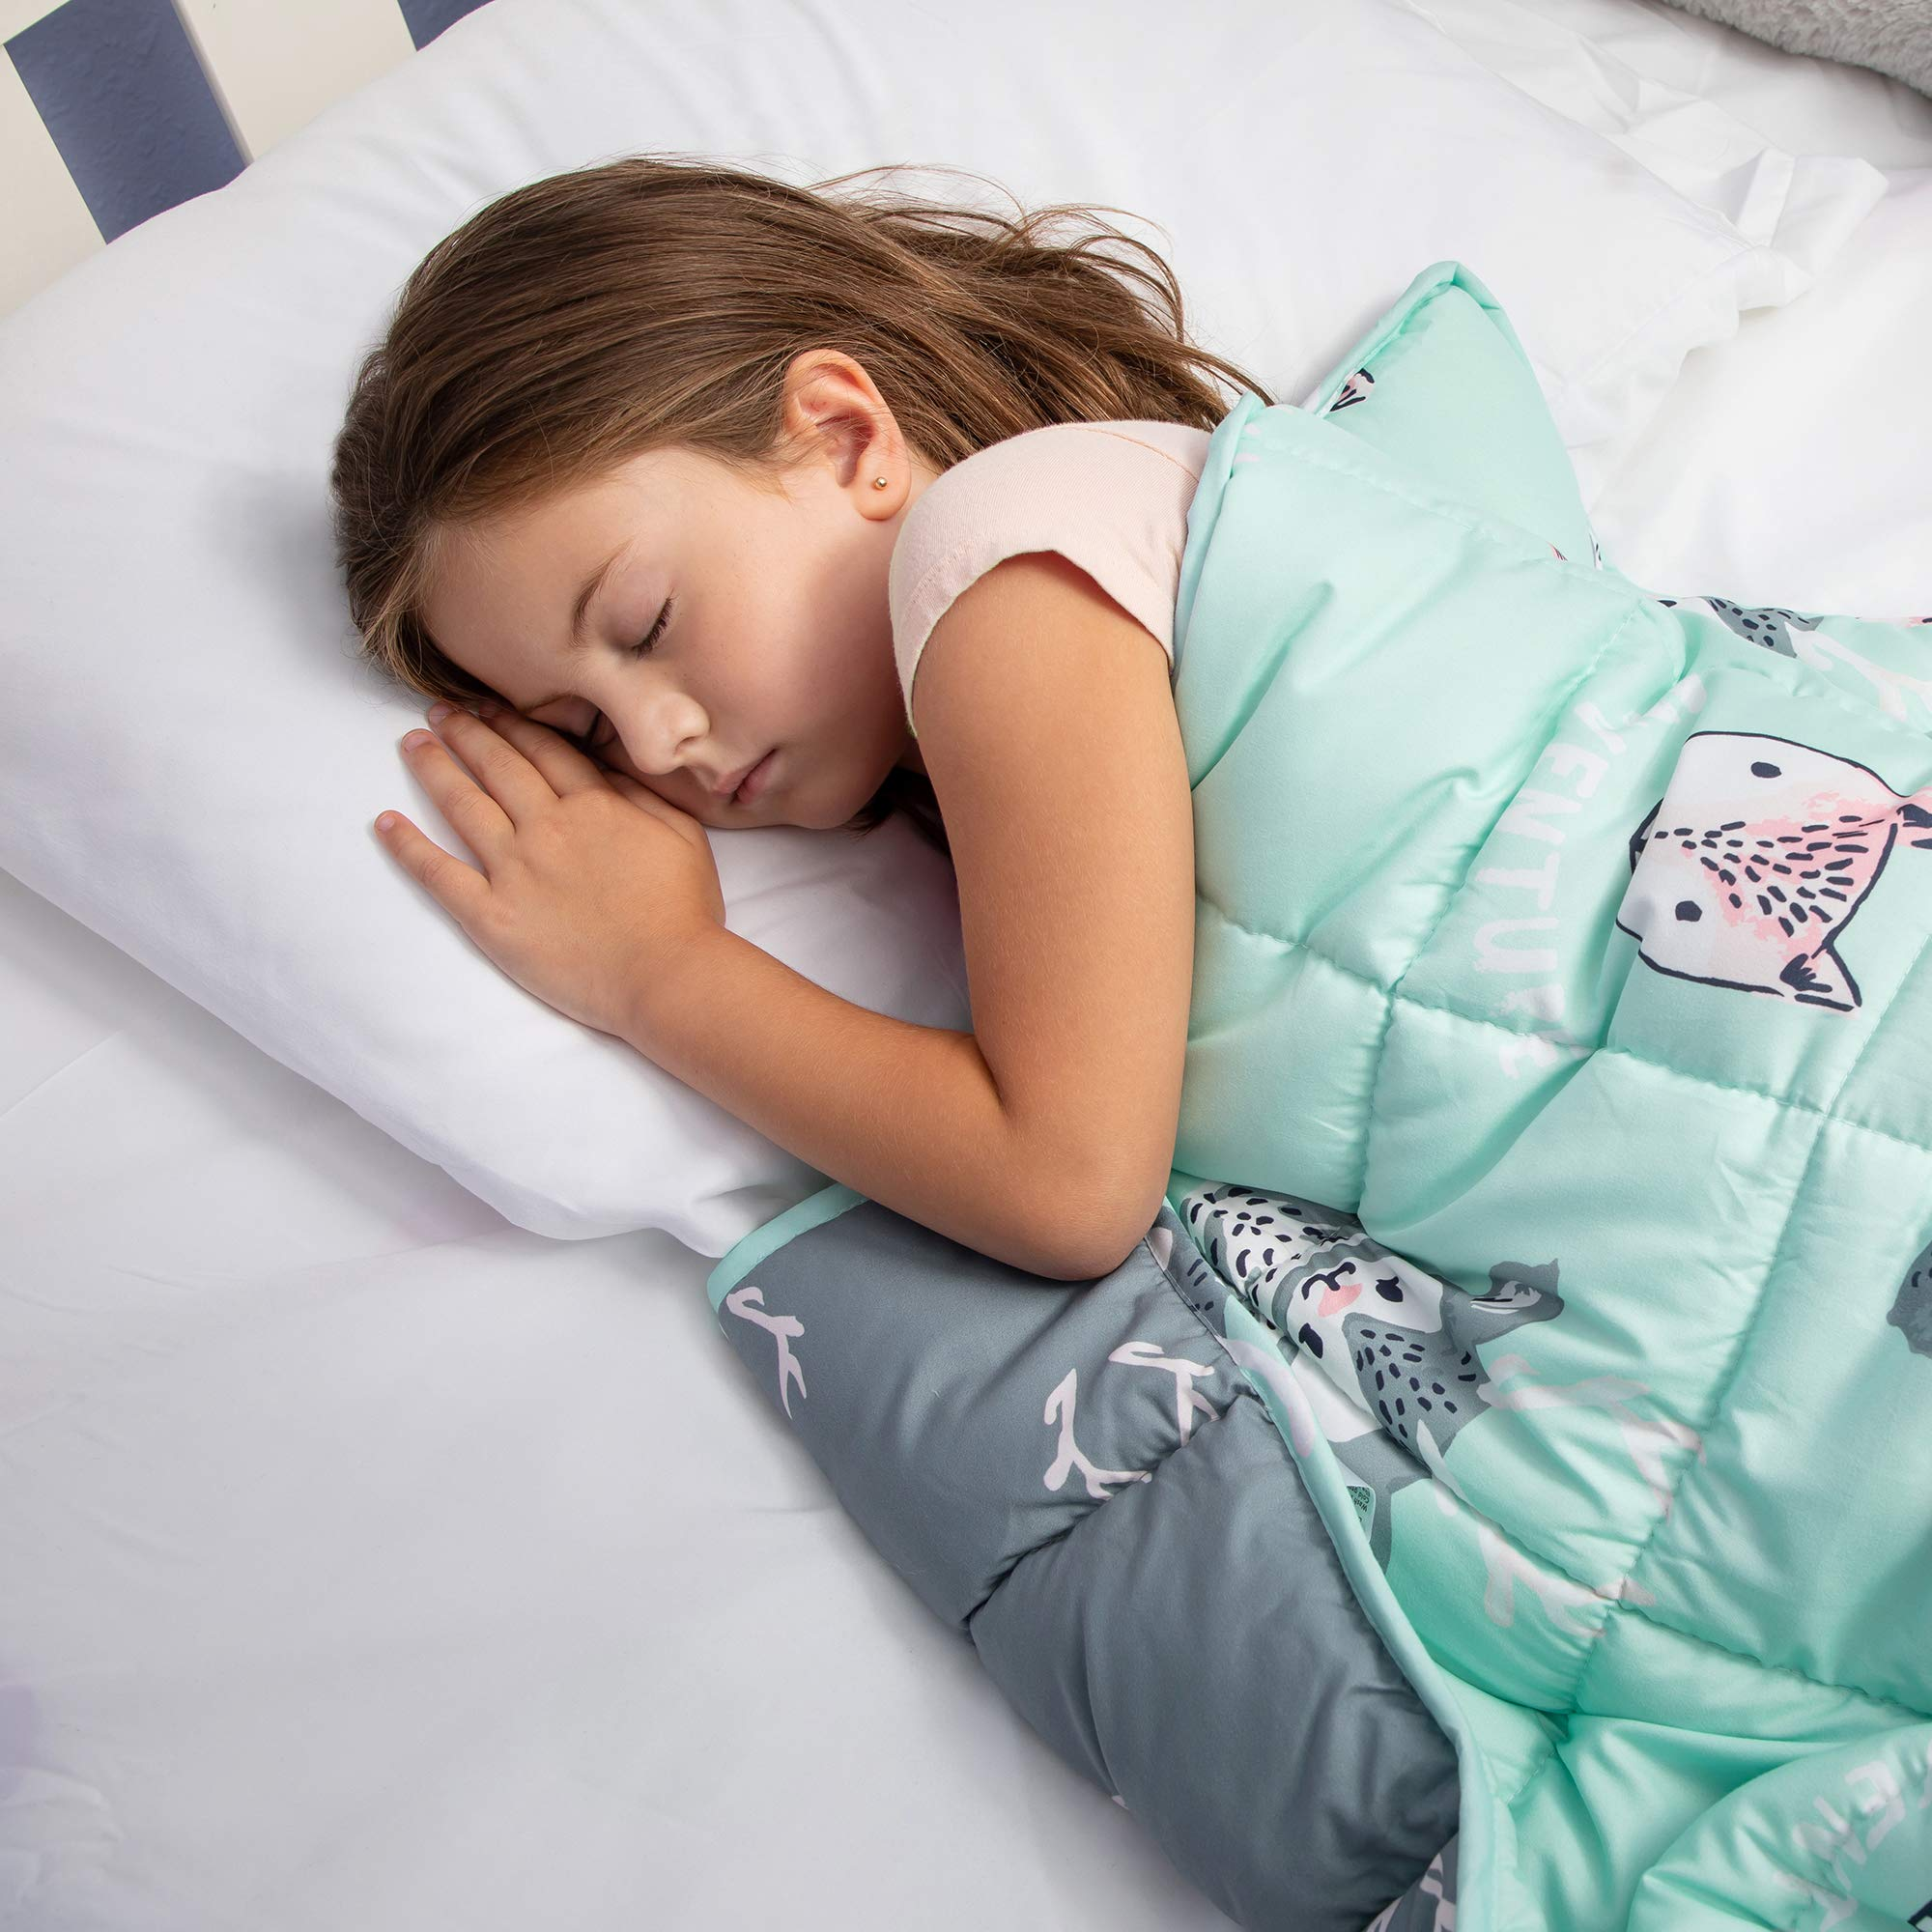 Weighted Blanket for Kids with Glass Beads, Drawstring Bag, 5 lbs - Soft, Quilted Sensory Blankets for Children with Anxiety, Insomnia, ADHD - Durable, Machine Washable Beaded Comforter for Toddlers by Life Tree